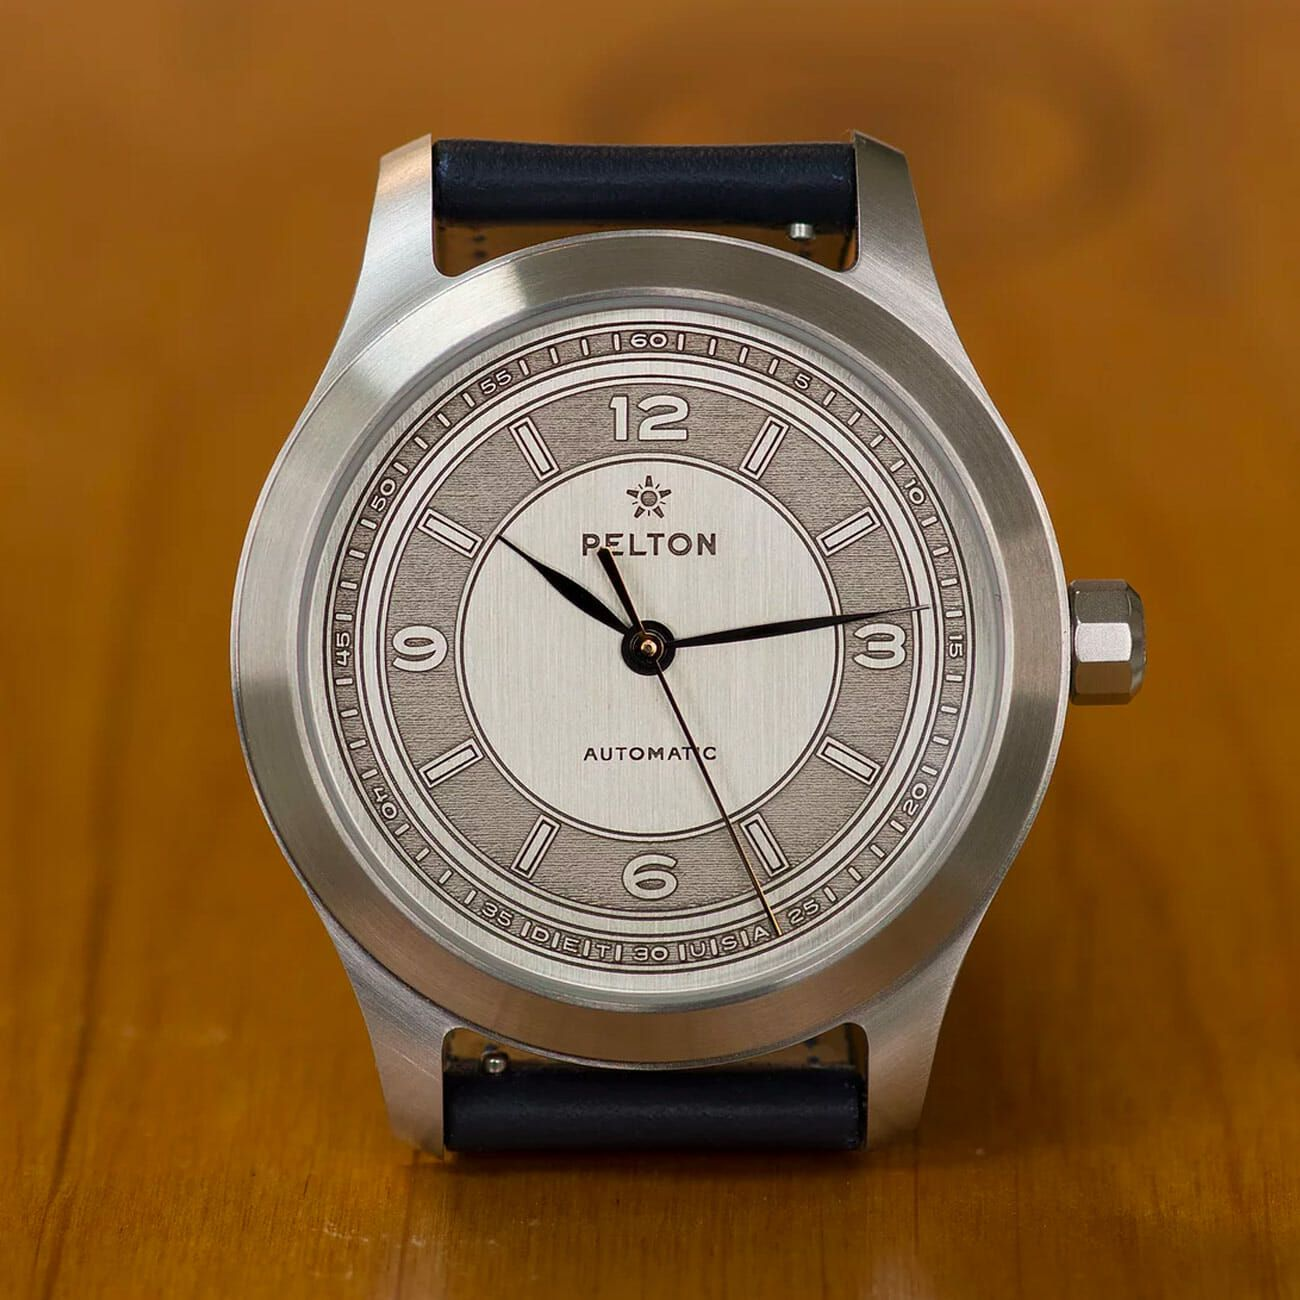 25 Best Boutique Watch Companies You Should Know About